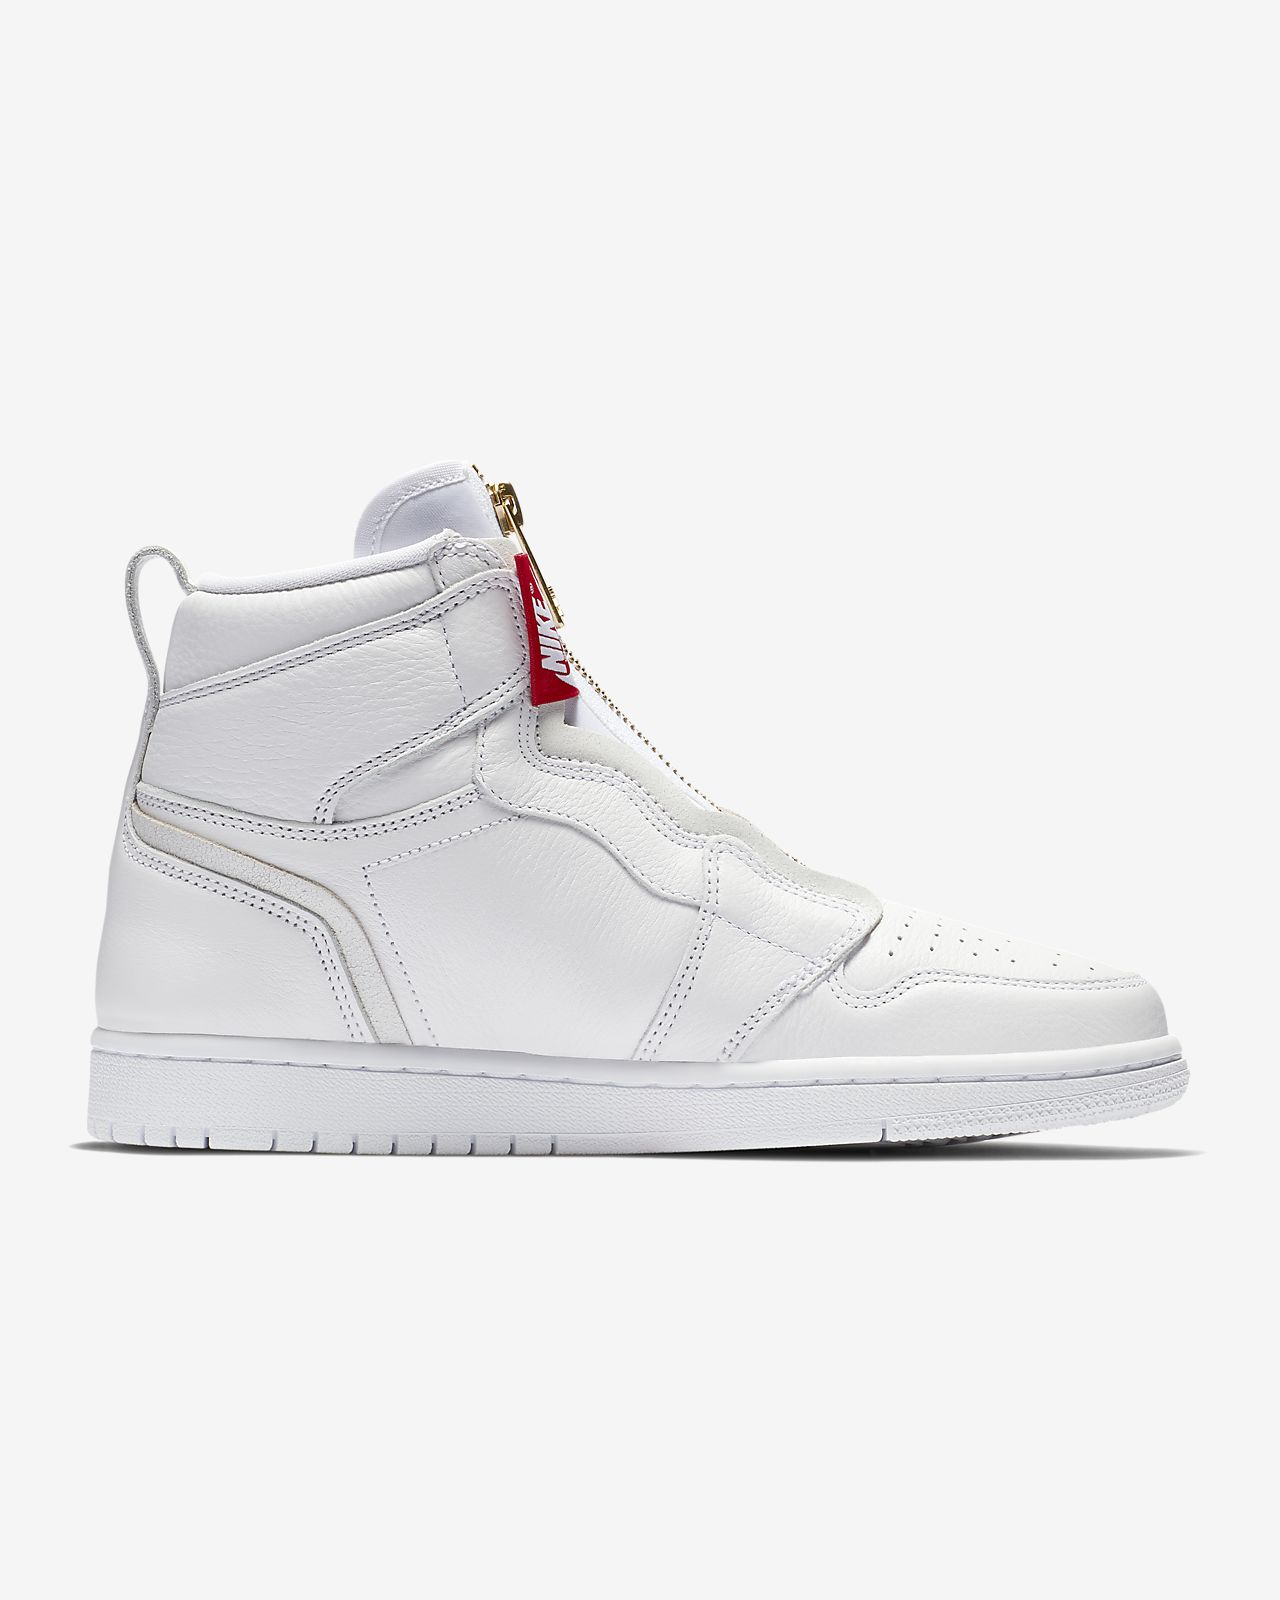 Nike Air Jordan 1 Womens Shoes White